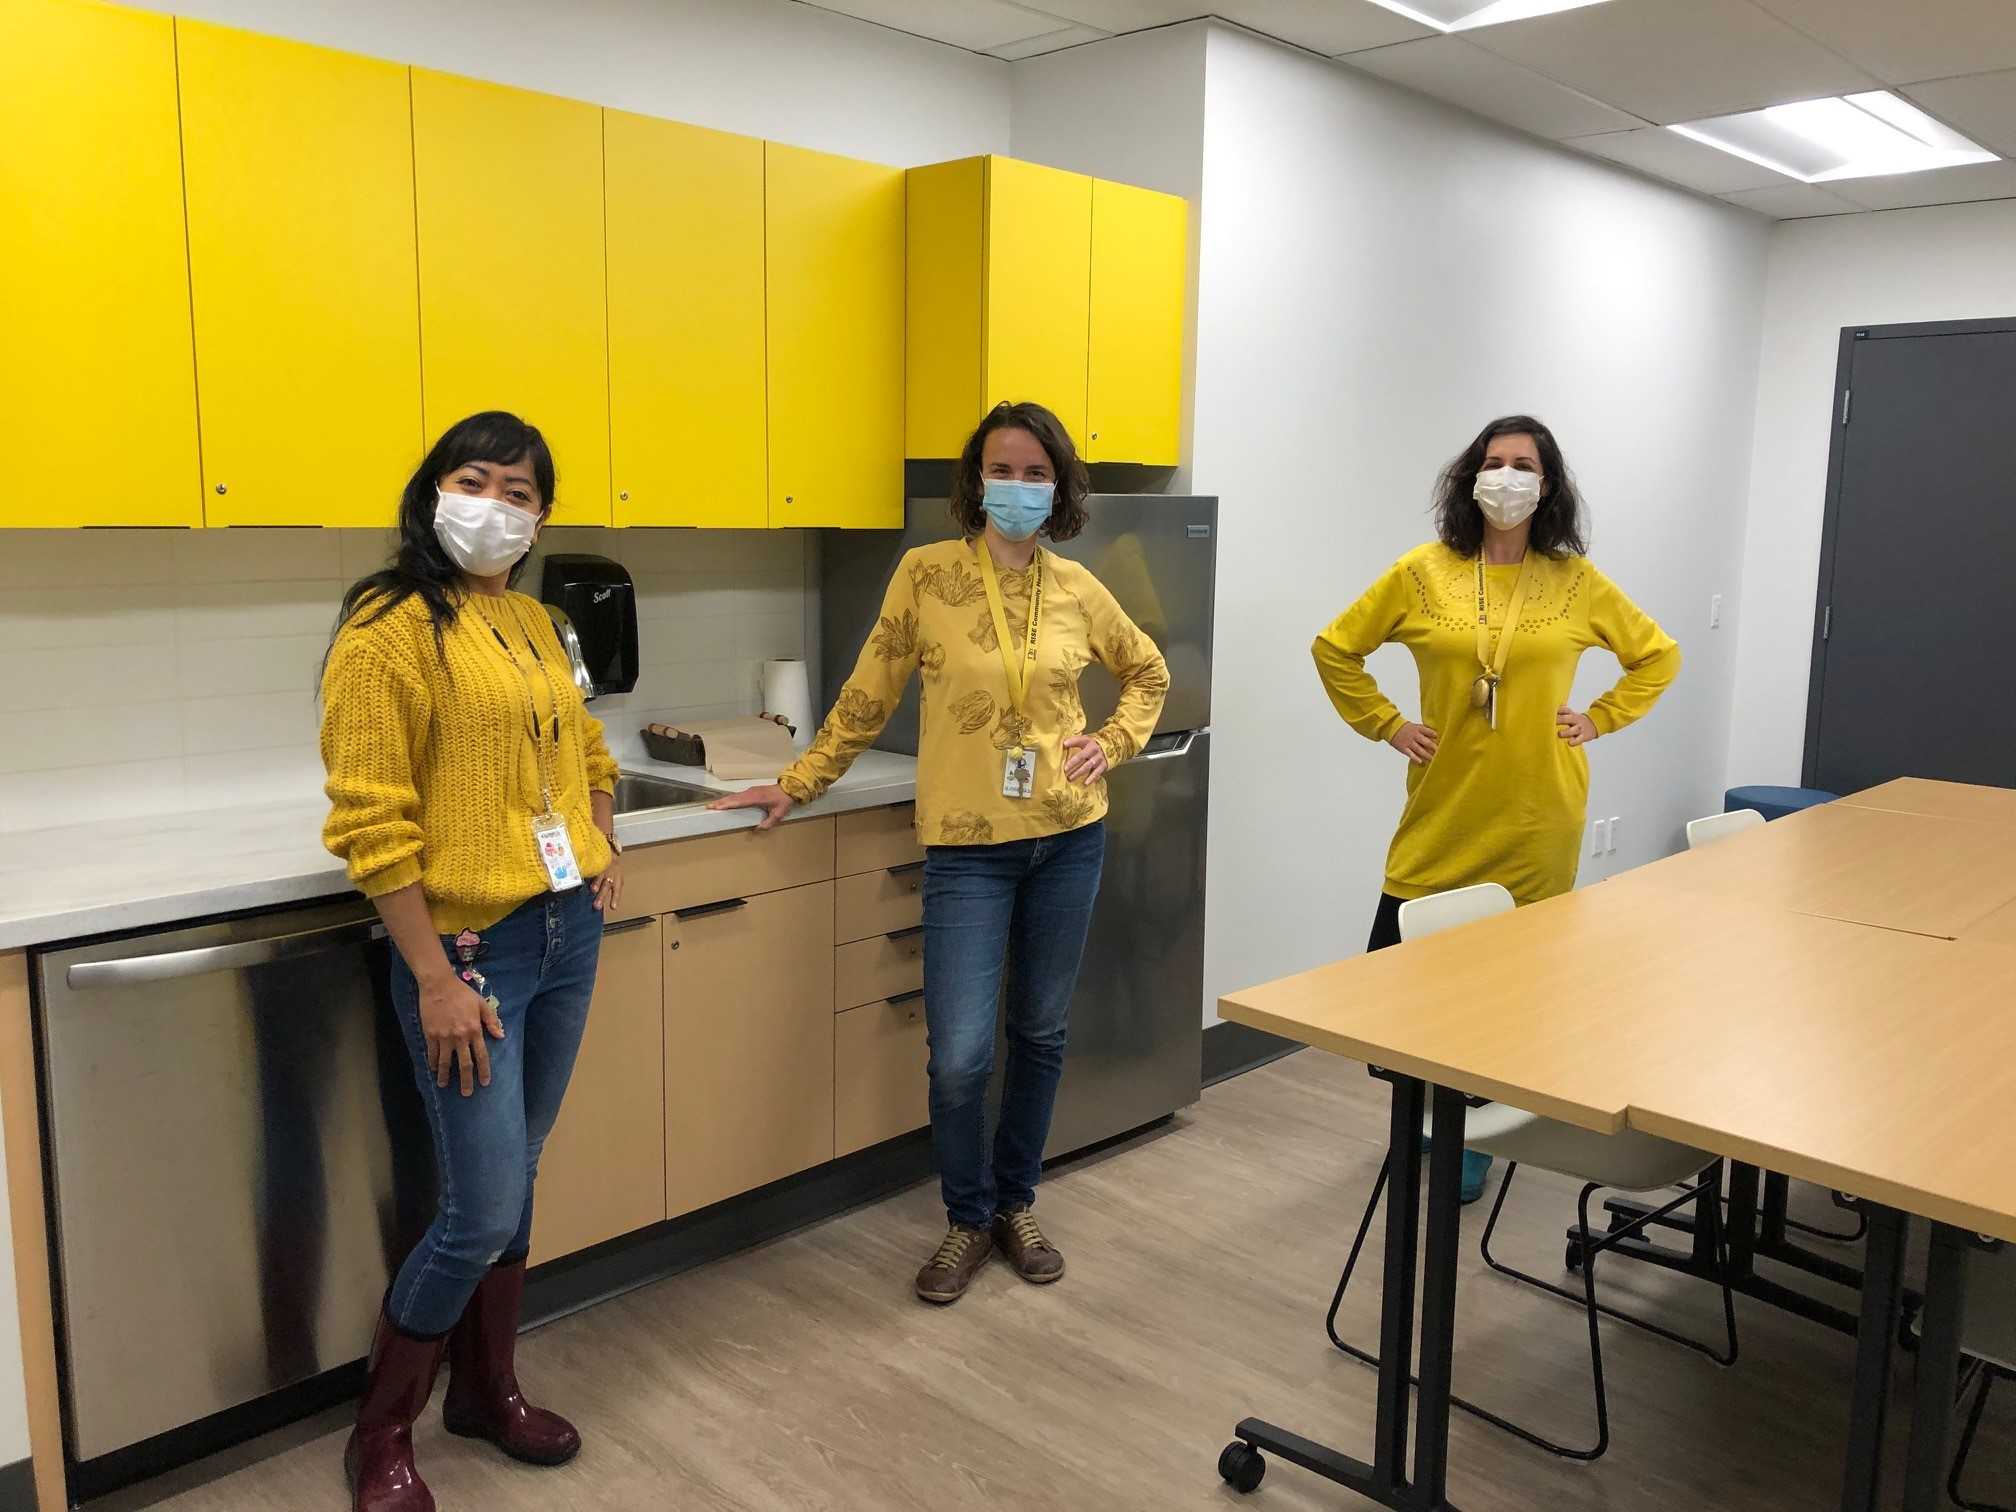 Three workers in wearing matching yellow tops and wearing masks in the RISE staff lounge.